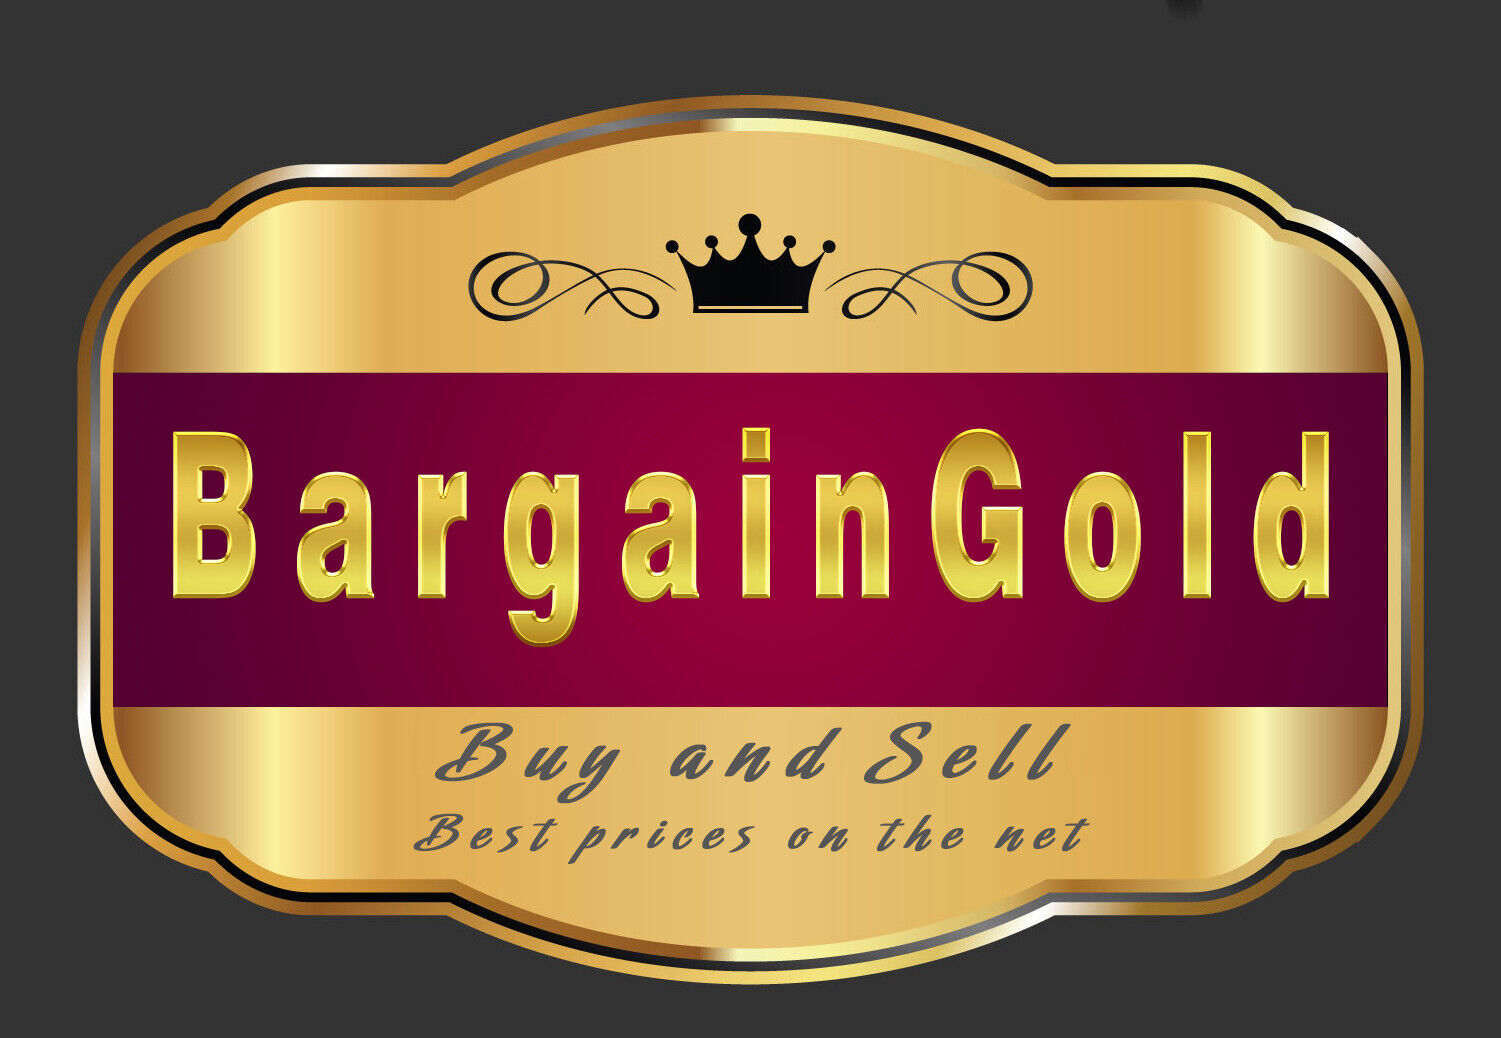 The Domain Name BargainGold.com Is For Sale  - $2,190.00